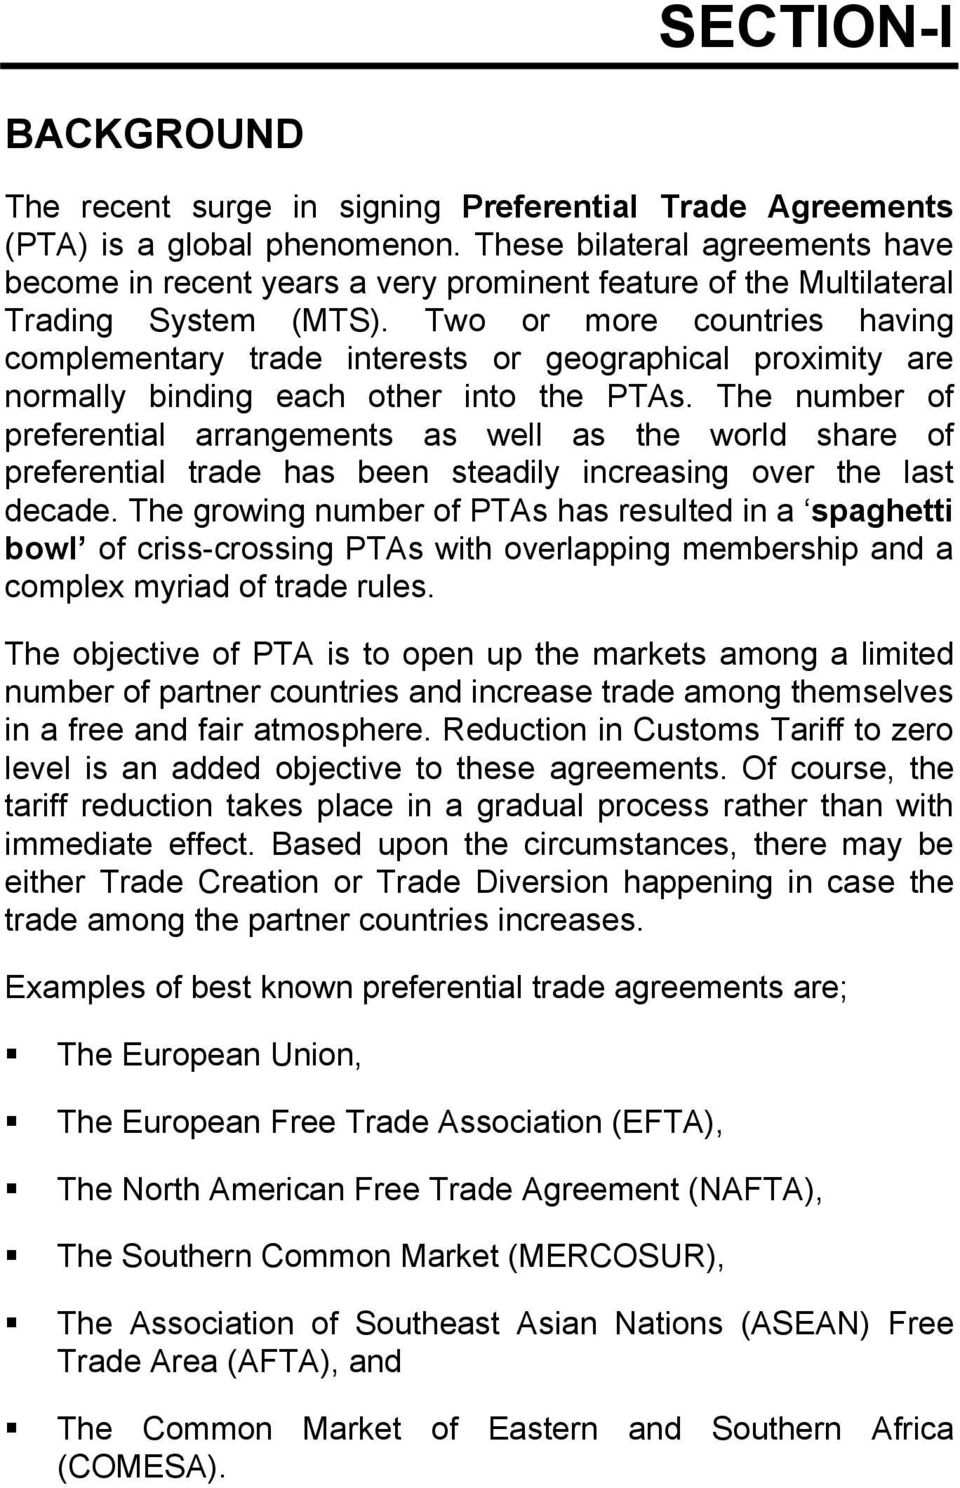 Study On Benefits Of Preferential Trade Agreements Pdf